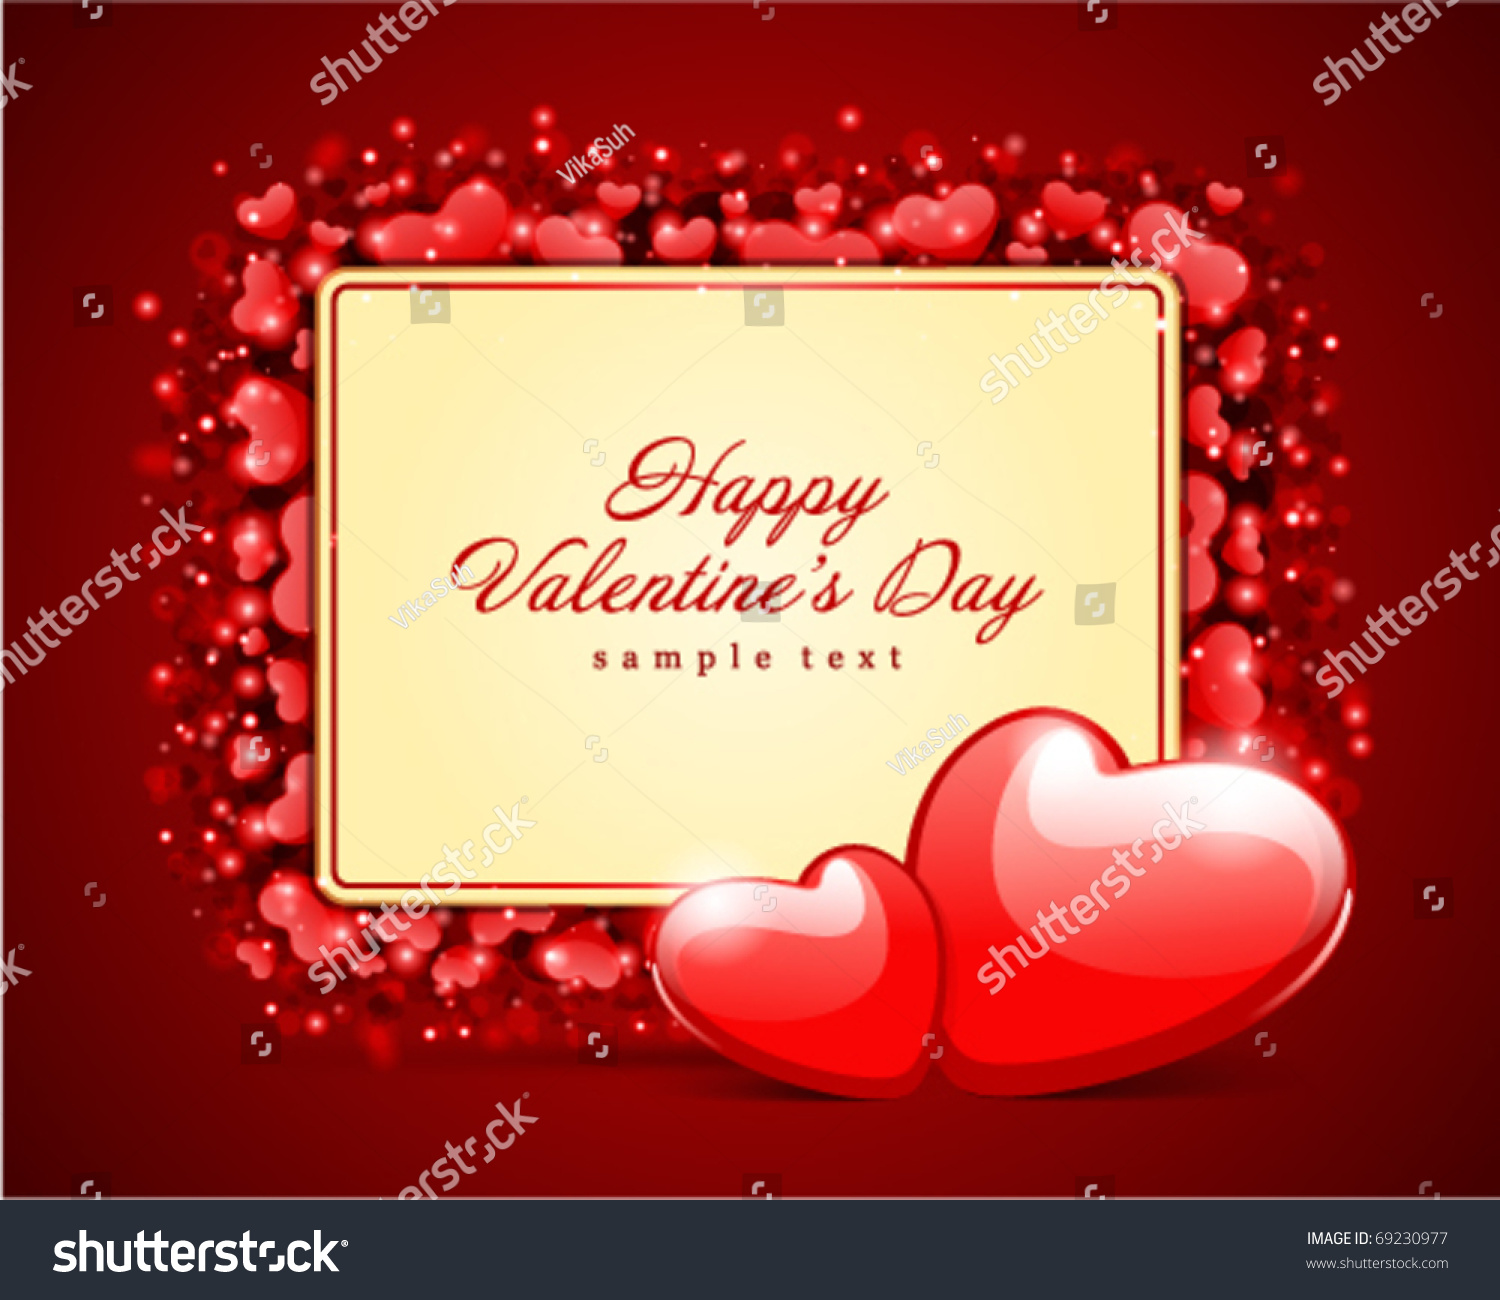 Hearts Card Frame Valentines Day Vector Stock Vector 69230977 ...